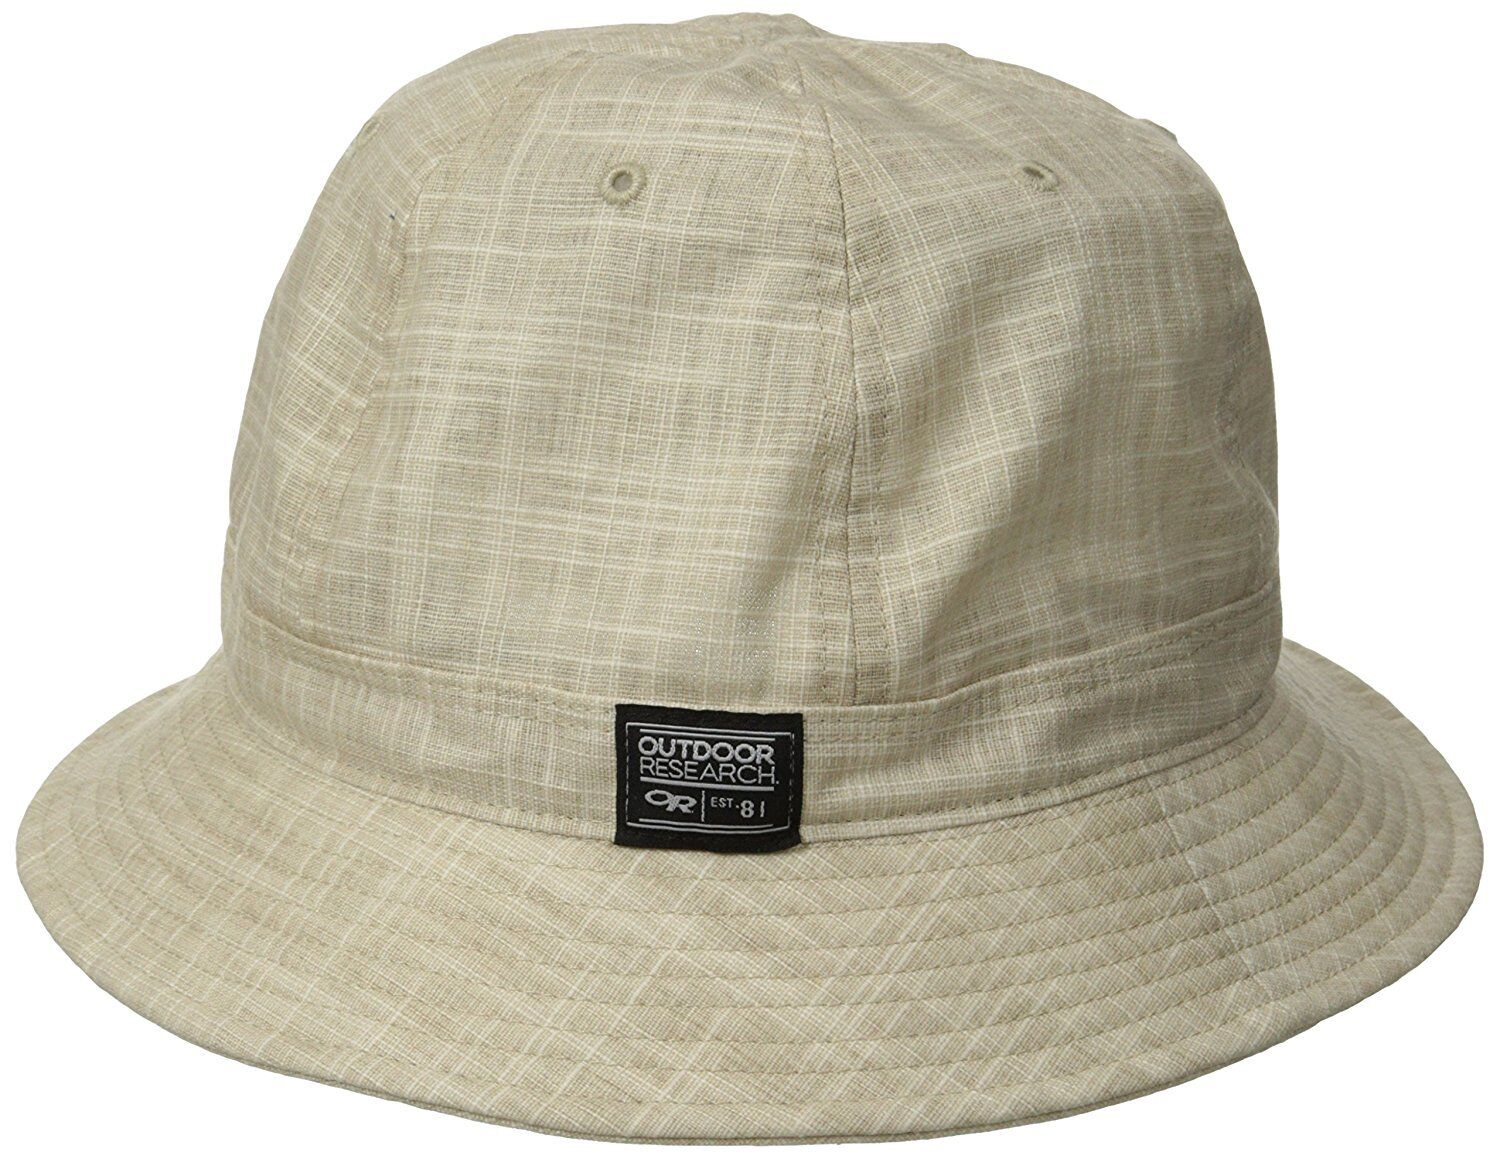 a87d02913bfce NEW Outdoor Research Misconduct Bucket Hat Tan Khaki Small M